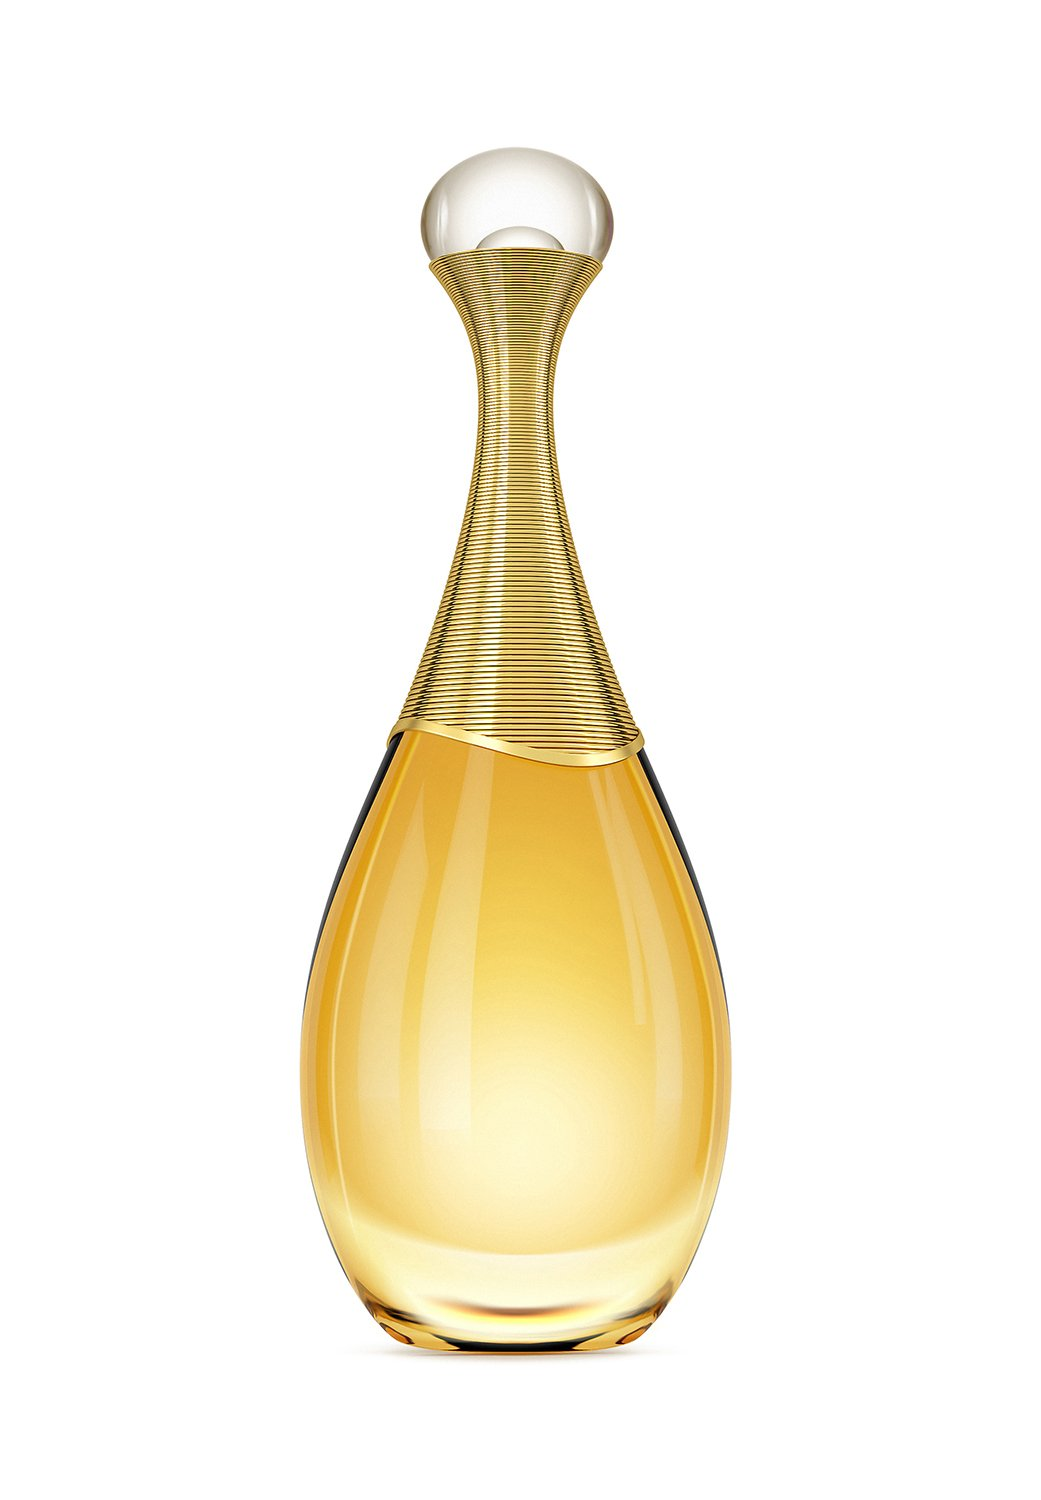 CGI product photograph of Dior bottle